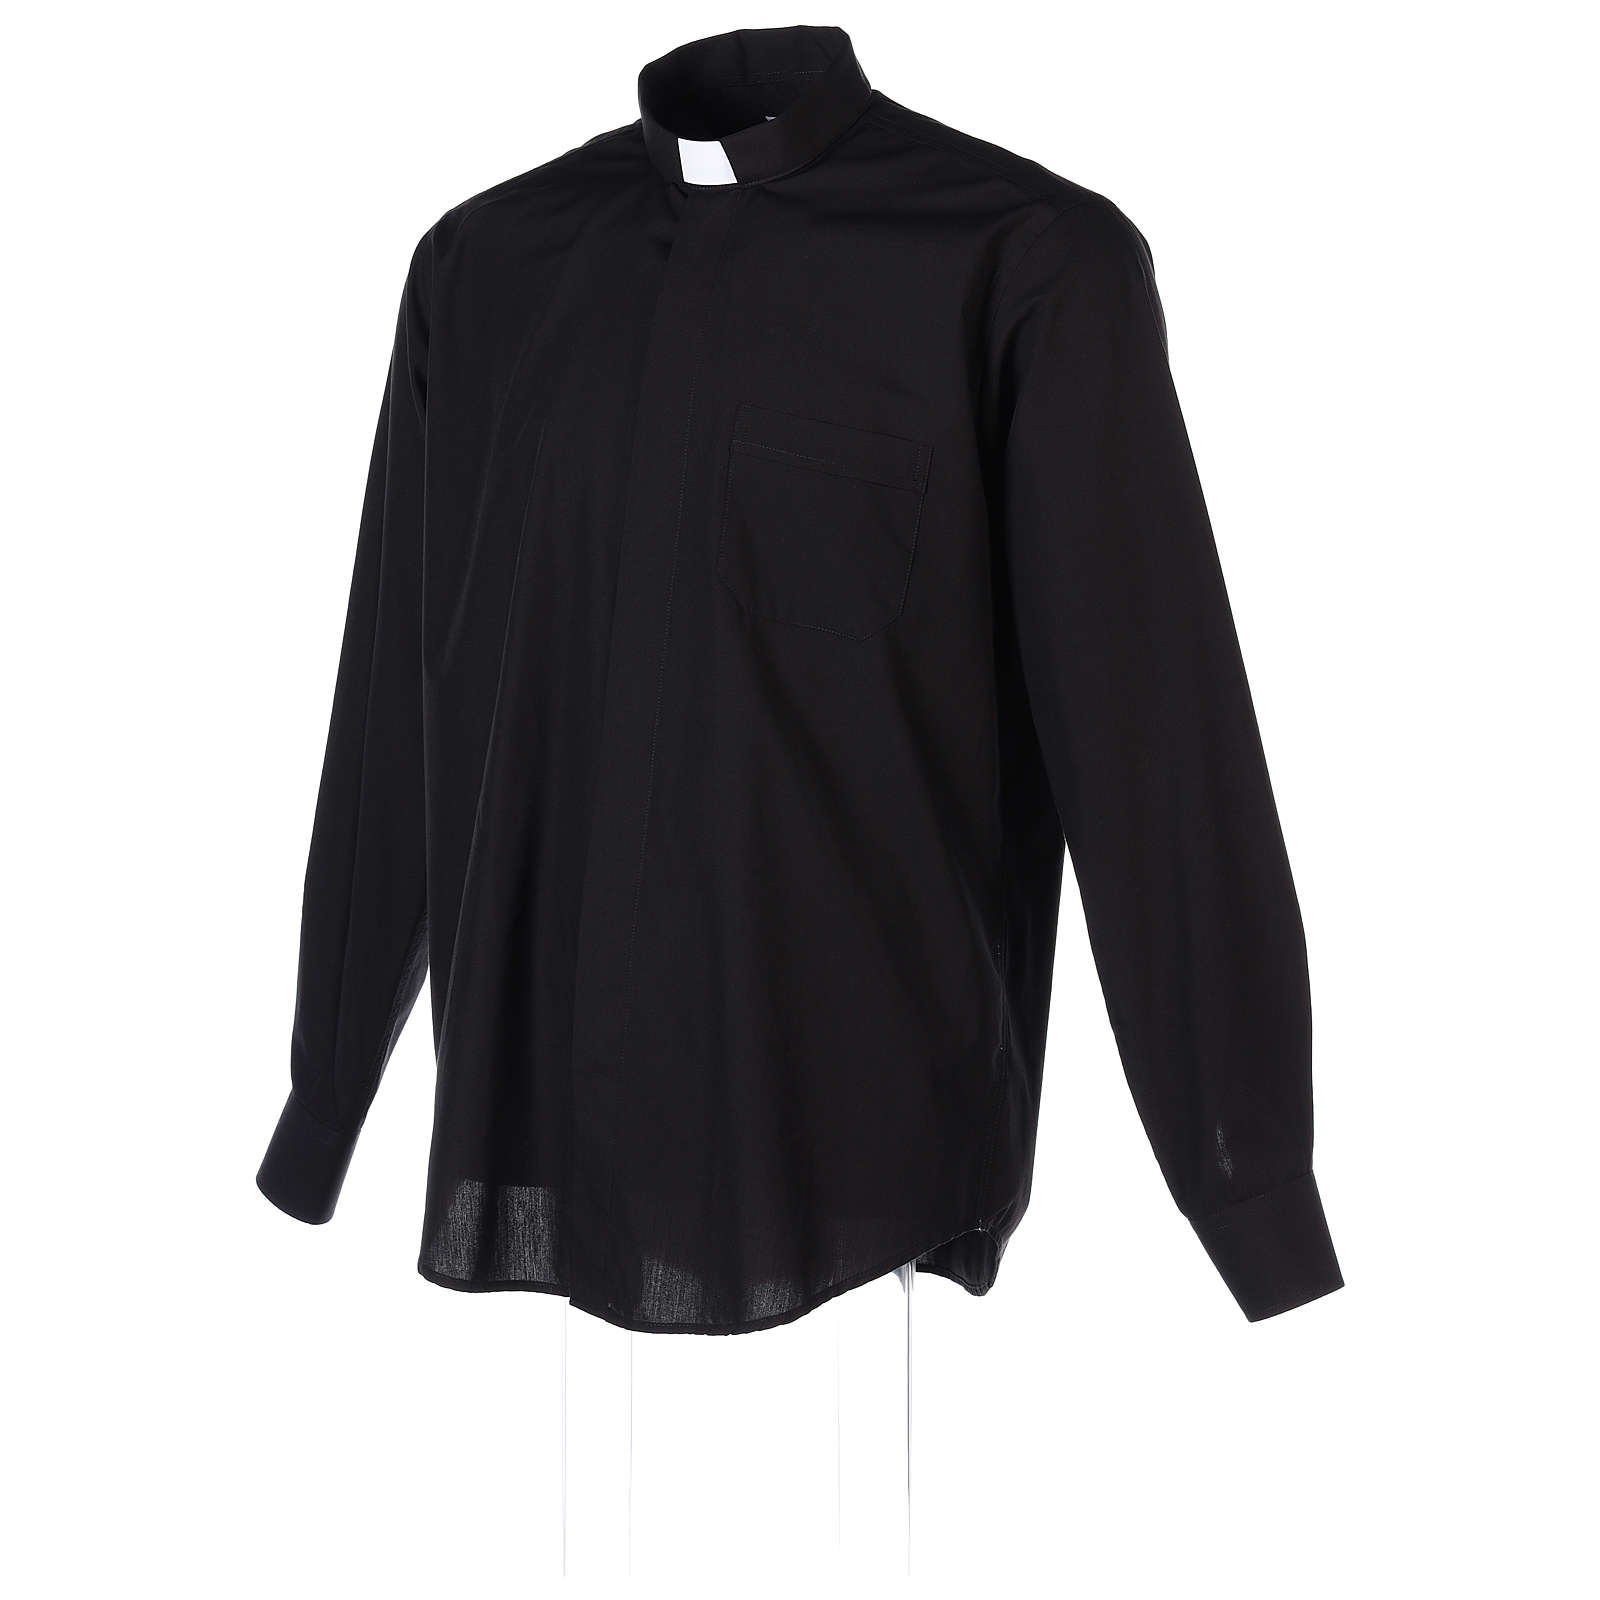 Long-sleeved clergy shirt in black cotton blend 4